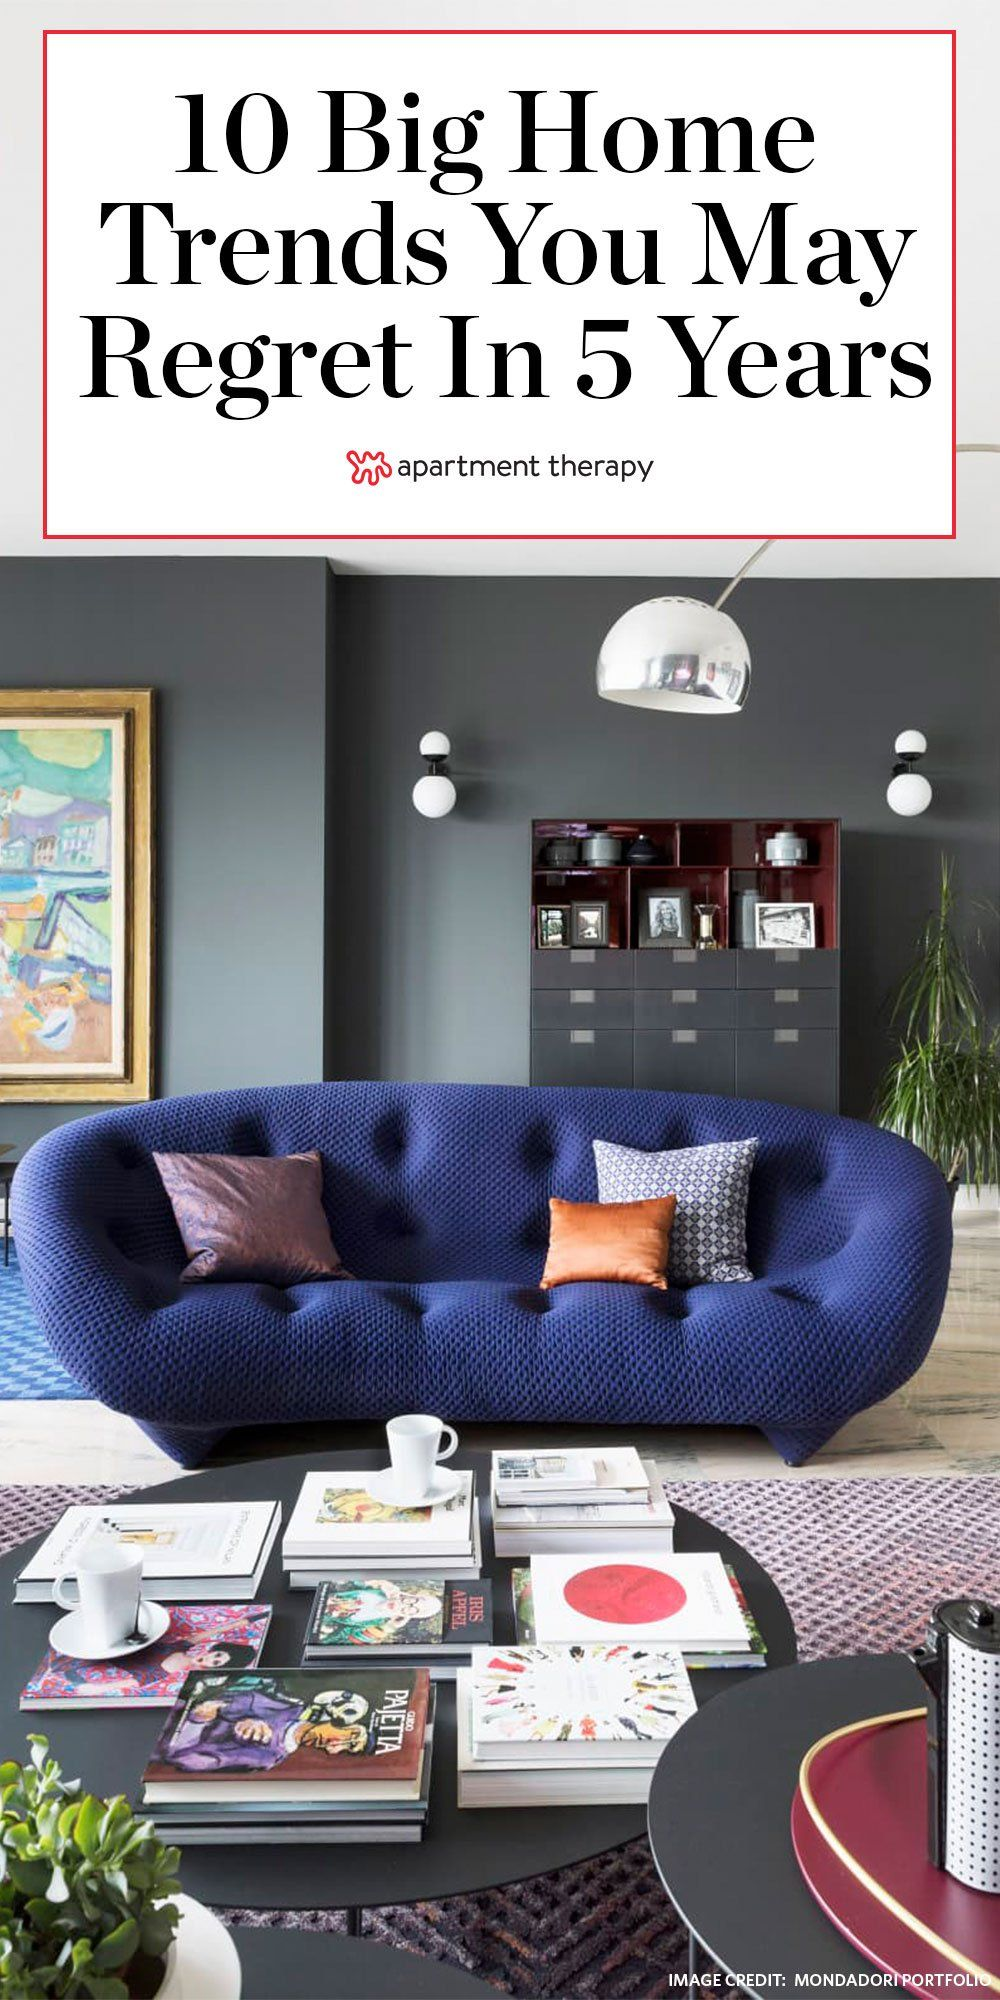 10 Home Decor Trends You May Regret In 5 Years According To Designers Trending Decor Home Trends Timeless Decor